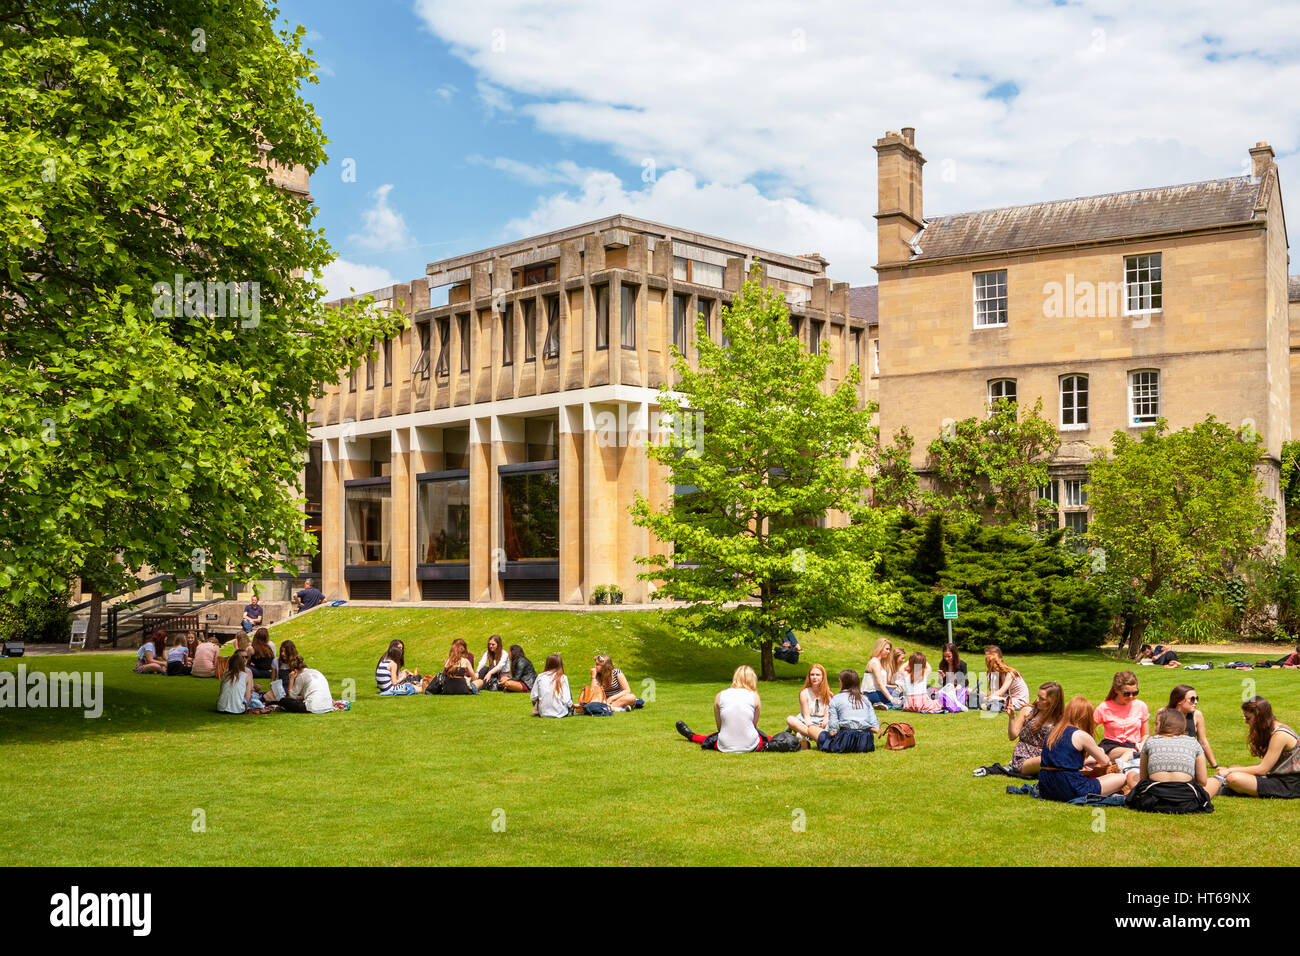 Students in Balliol College. Oxford, England - Stock Image